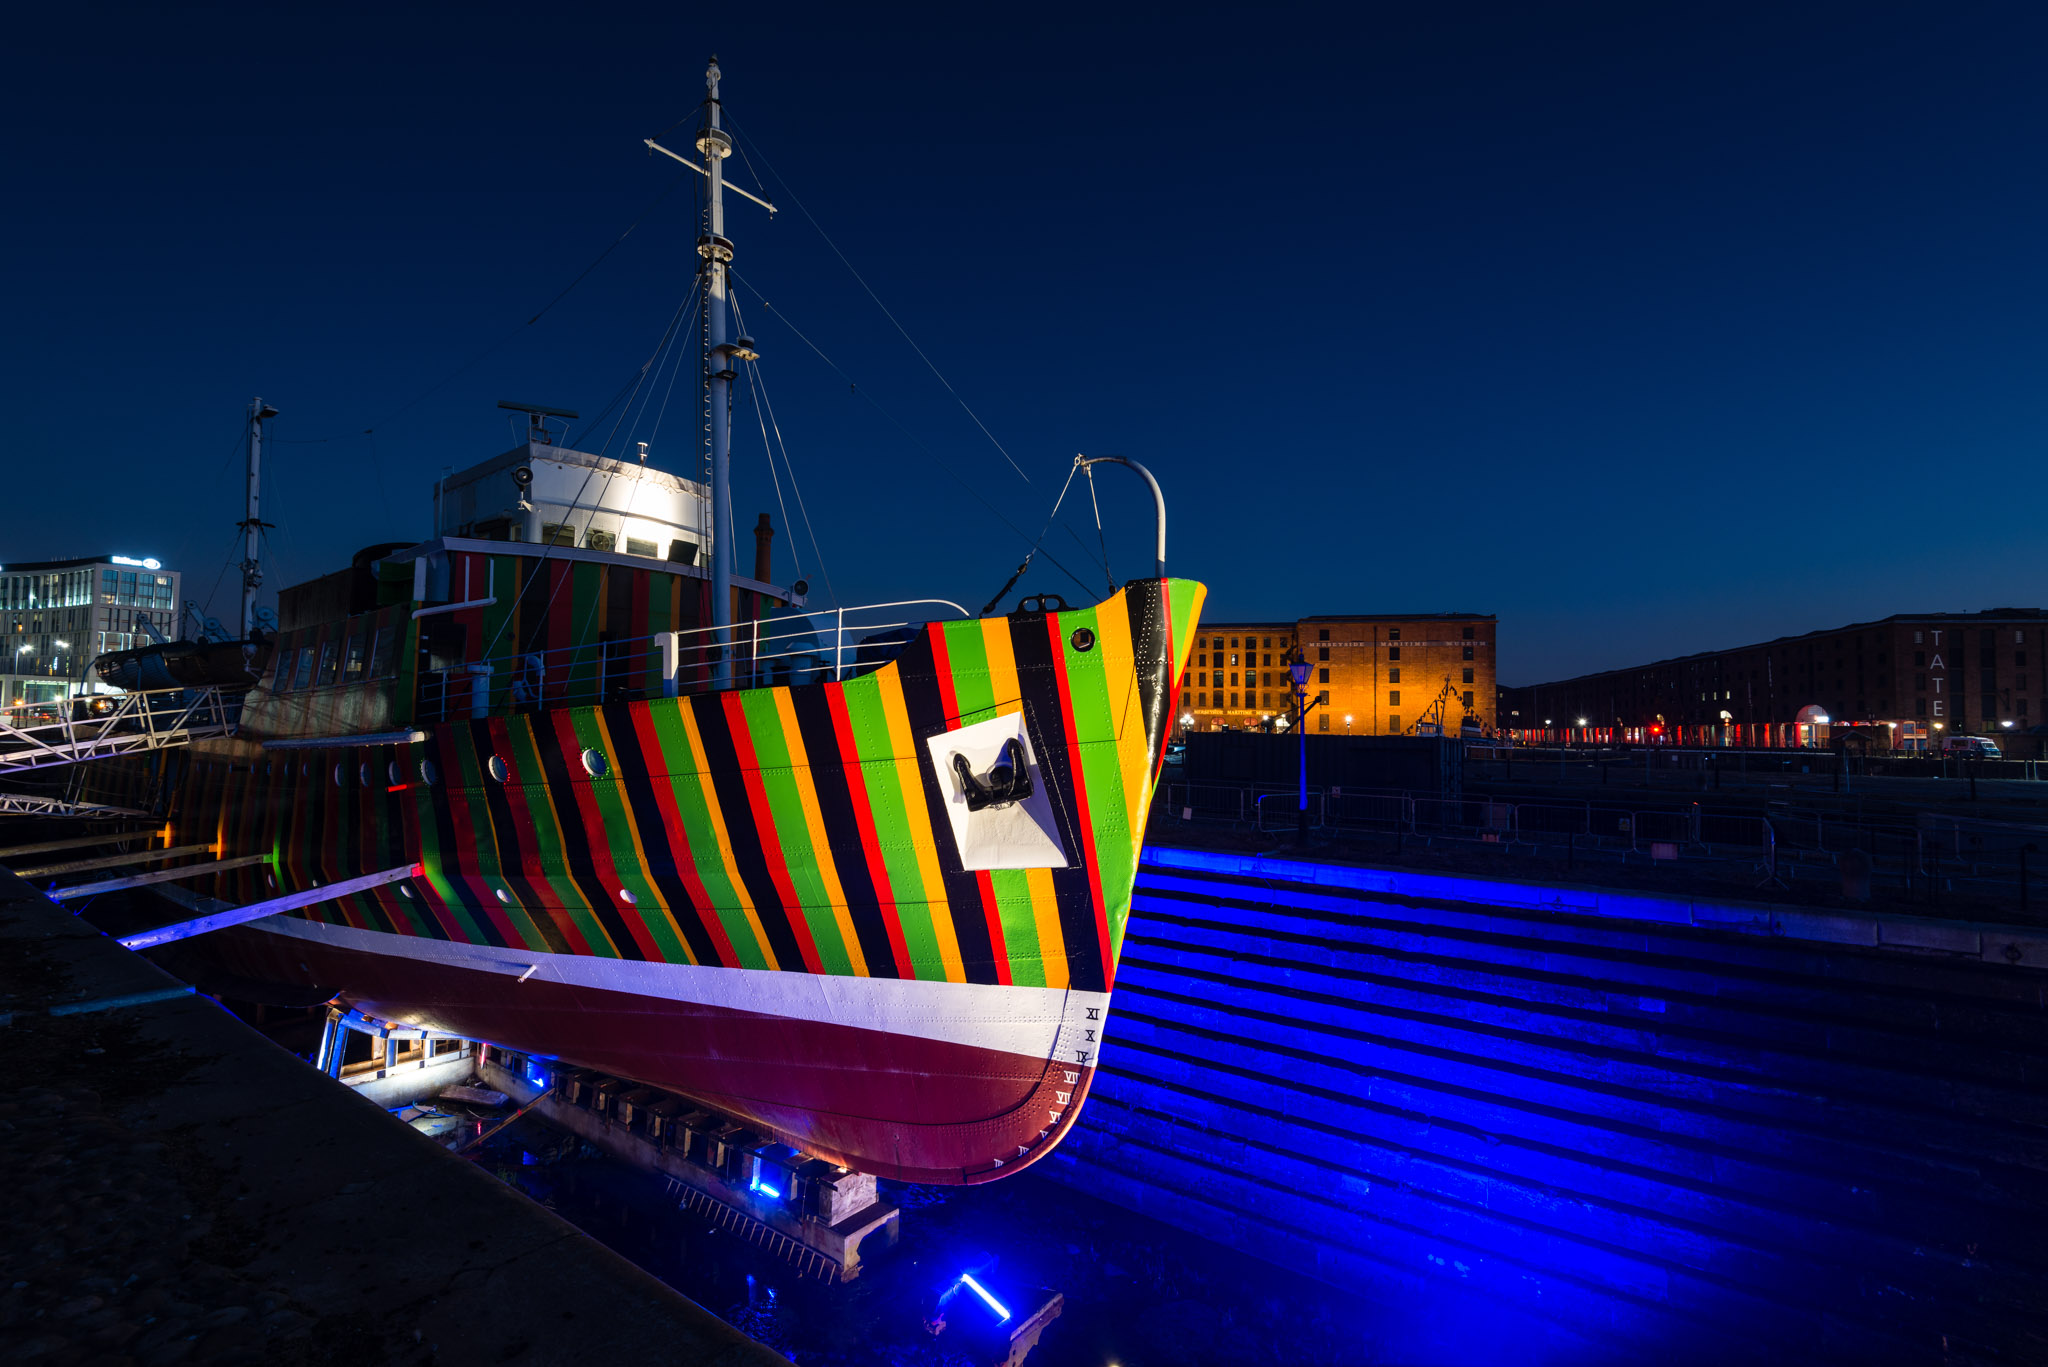 dazzle-ship-6160-pete-carr